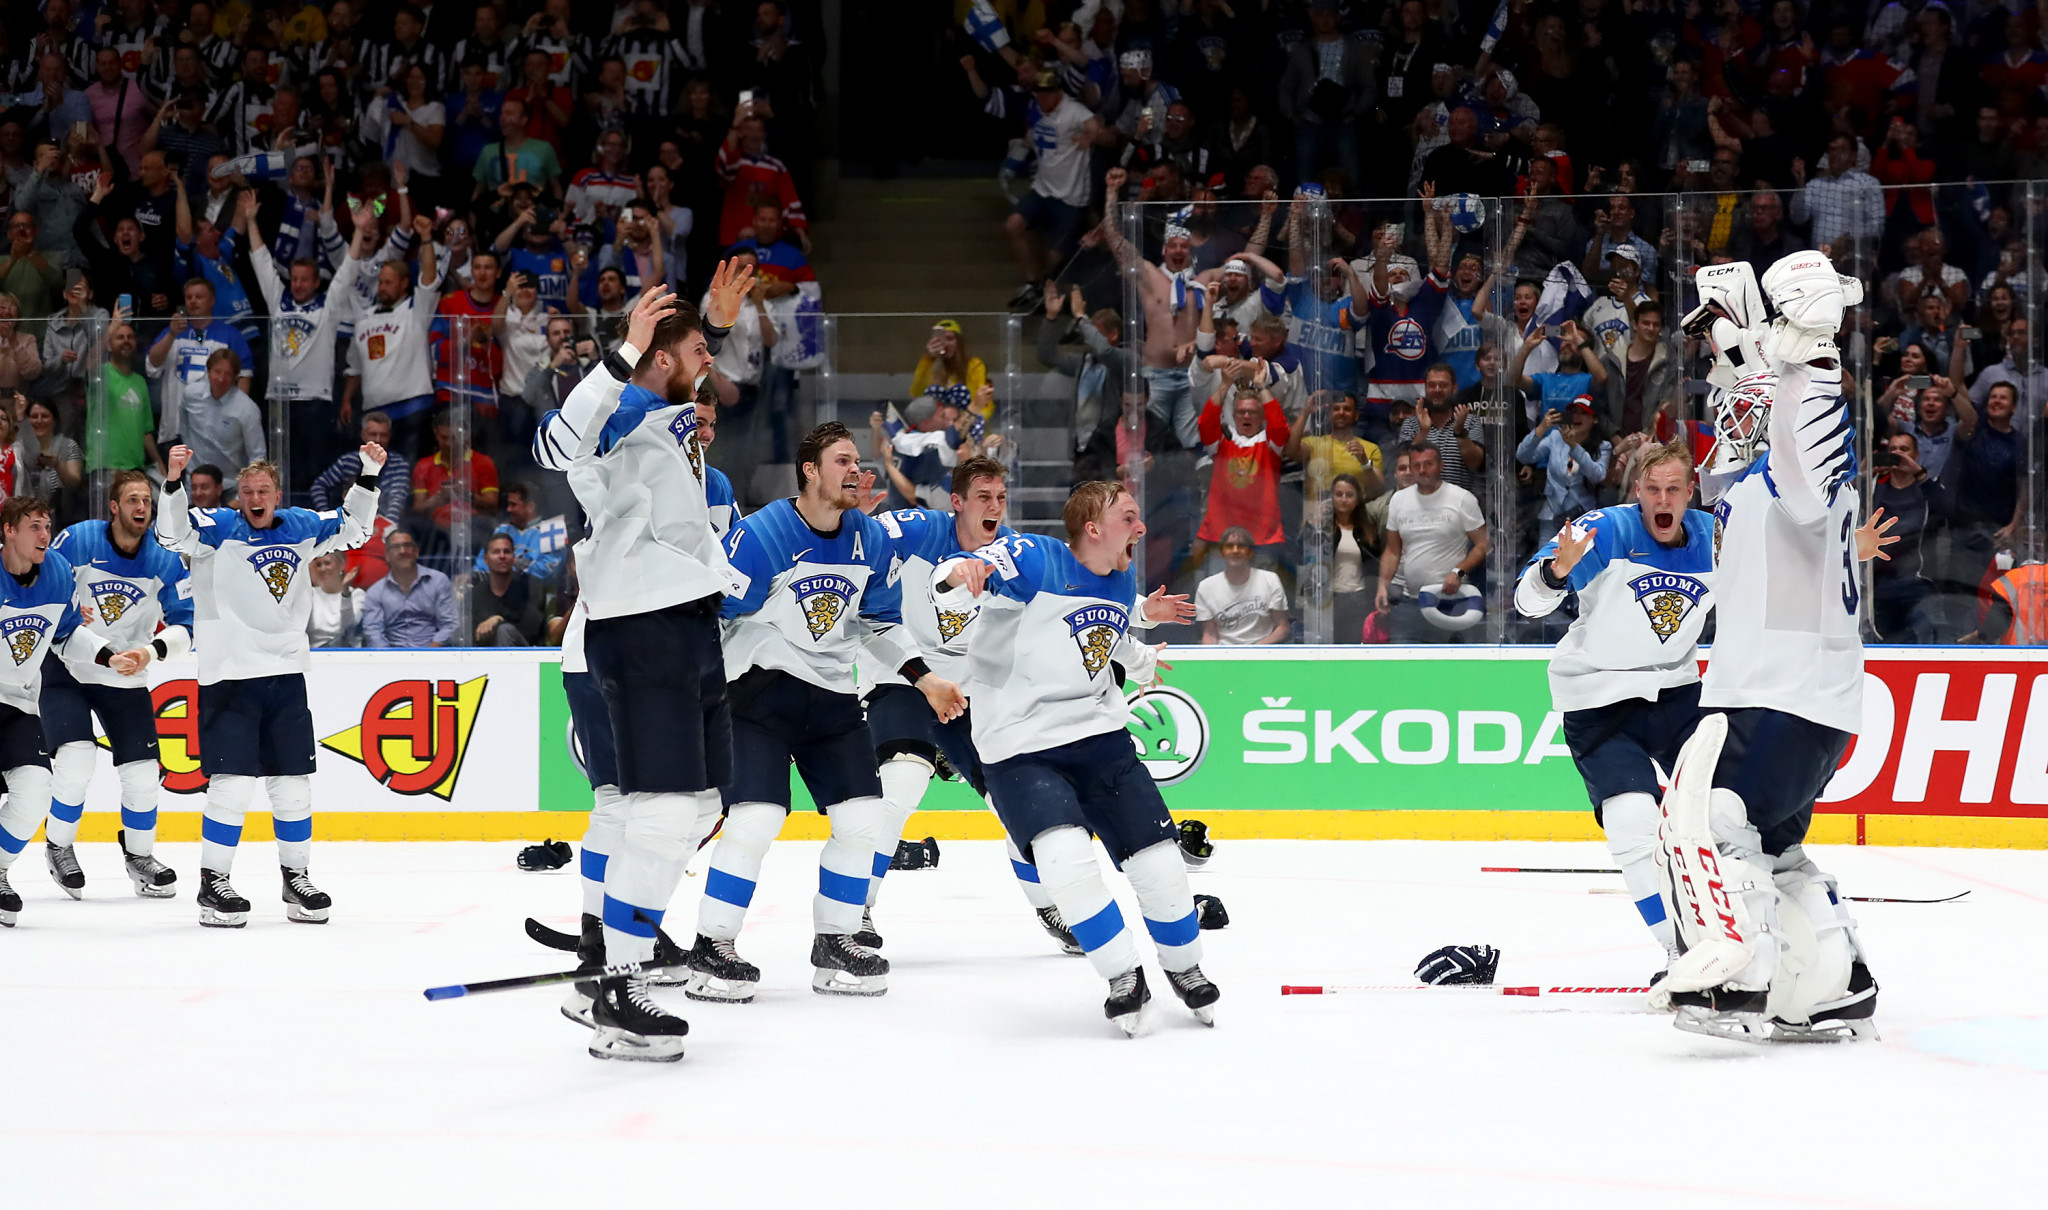 The Finnish Ice Hockey Association has signed a six-season deal with media group Discovery for the rights to more than 200 national team matches per year from the 2020-2021 campaign ©Getty Images